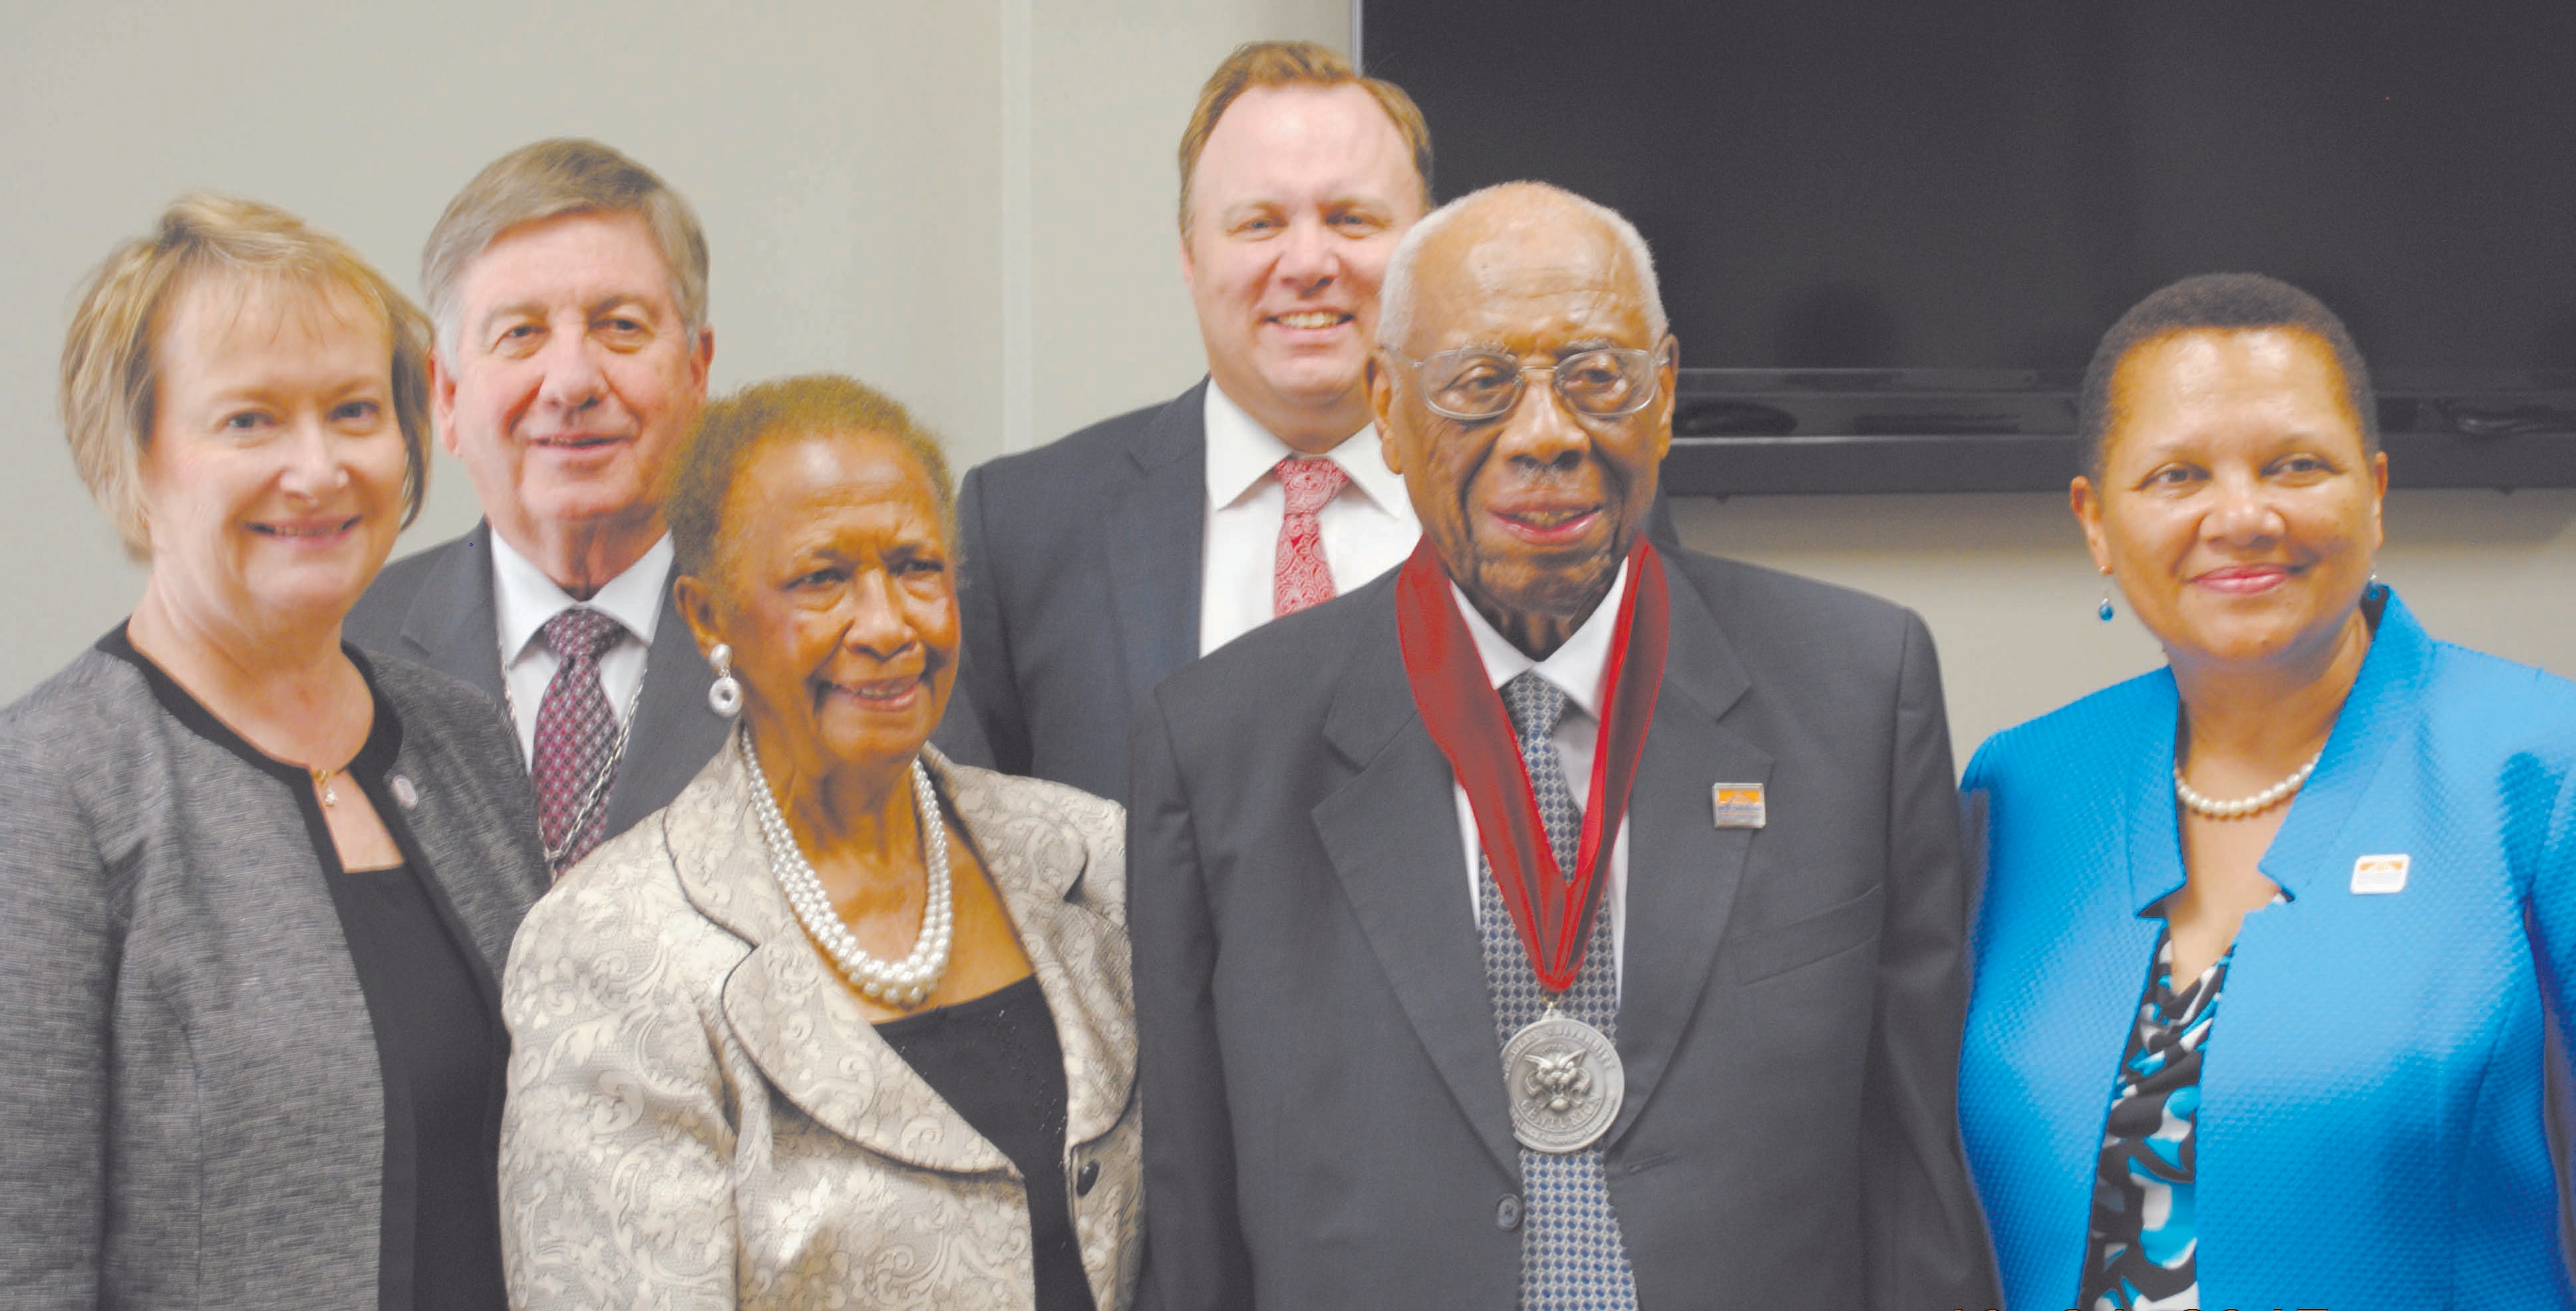 L to R: Dr. Molly Cluskey, Mrs. Maude Hall, Dr. Clyde W. Hall, Dr. Cheryl Dozier Rear L to R: Dr. Stanley Liberty, Jacob Heuser